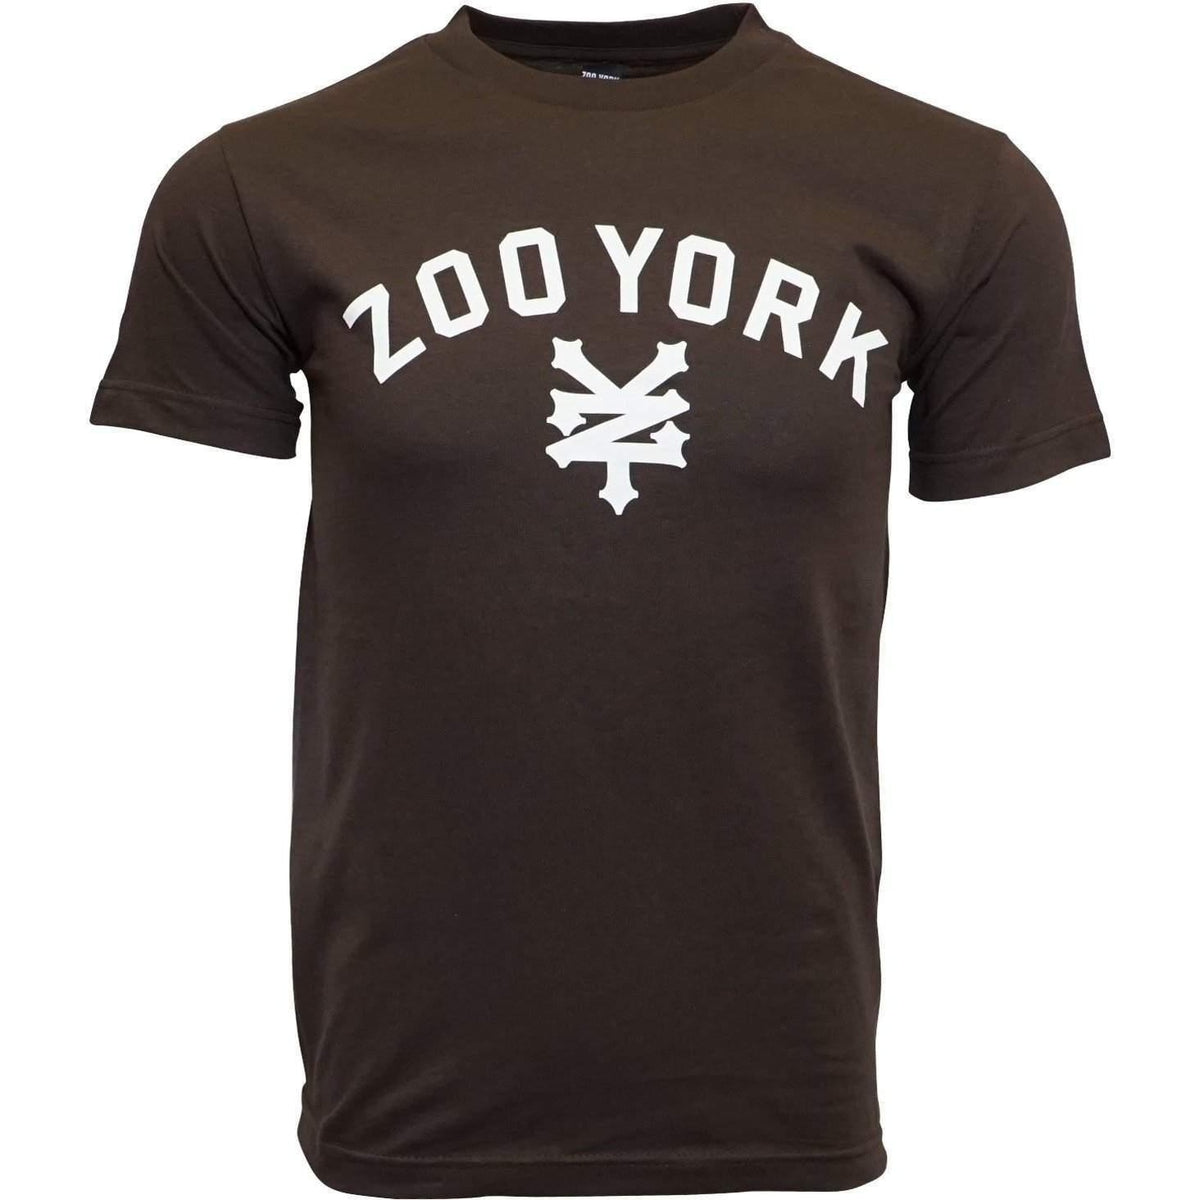 ZOO YOUR LOGO T SHIRT